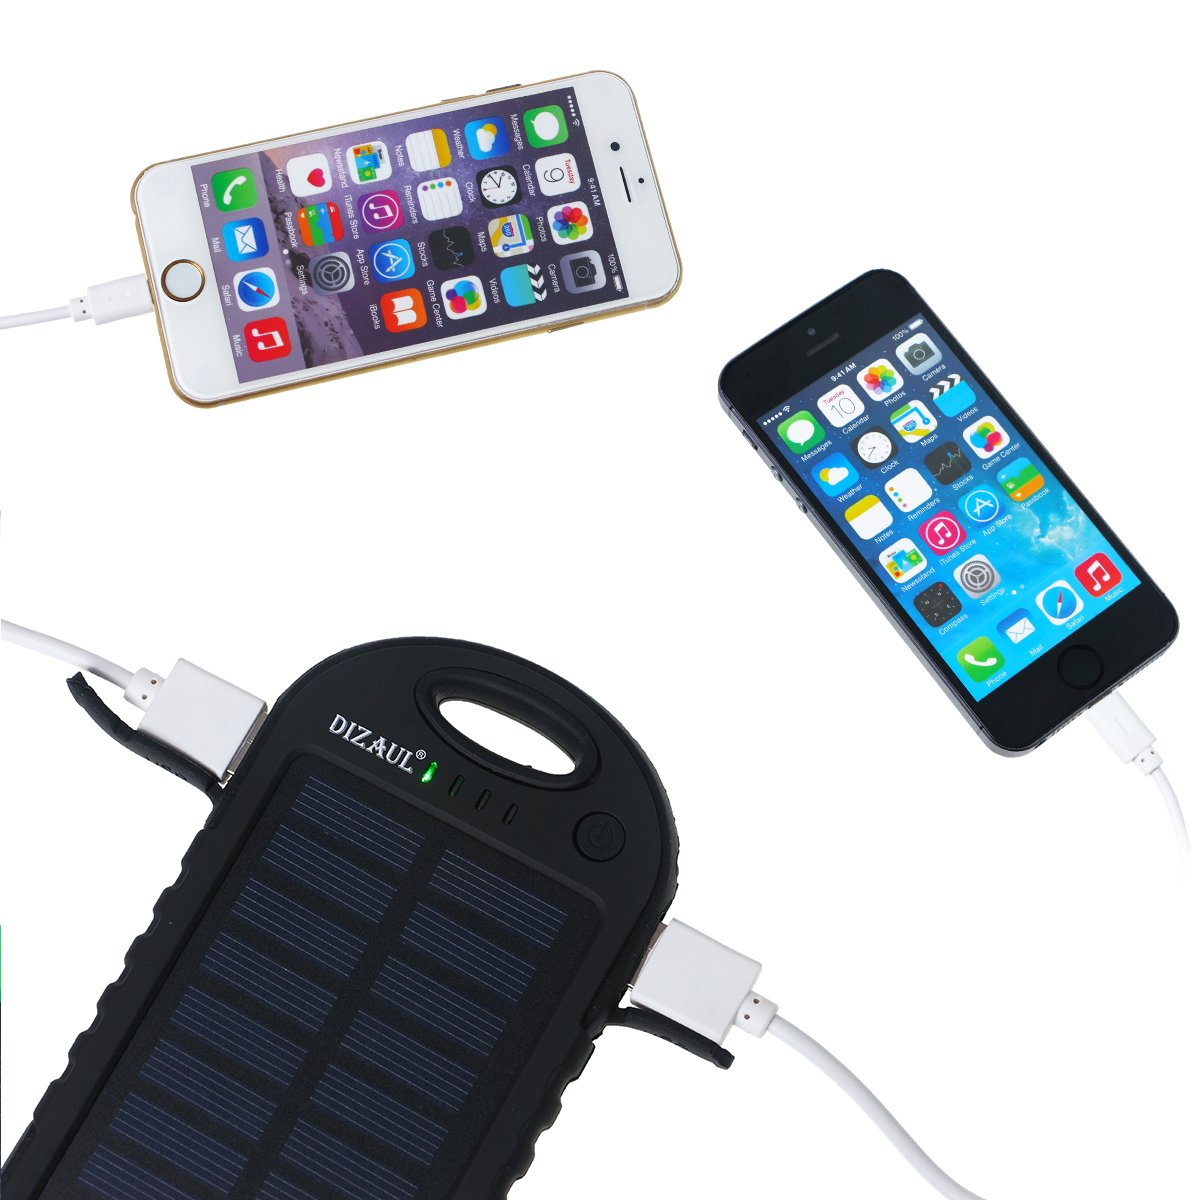 Amazon.com: Solar Charger, Dizaul 5000mAh Portable Solar Power Bank  Waterproof/Shockproof/Dustproof Dual USB Battery Bank for Cell Phone,  Samsung, ...